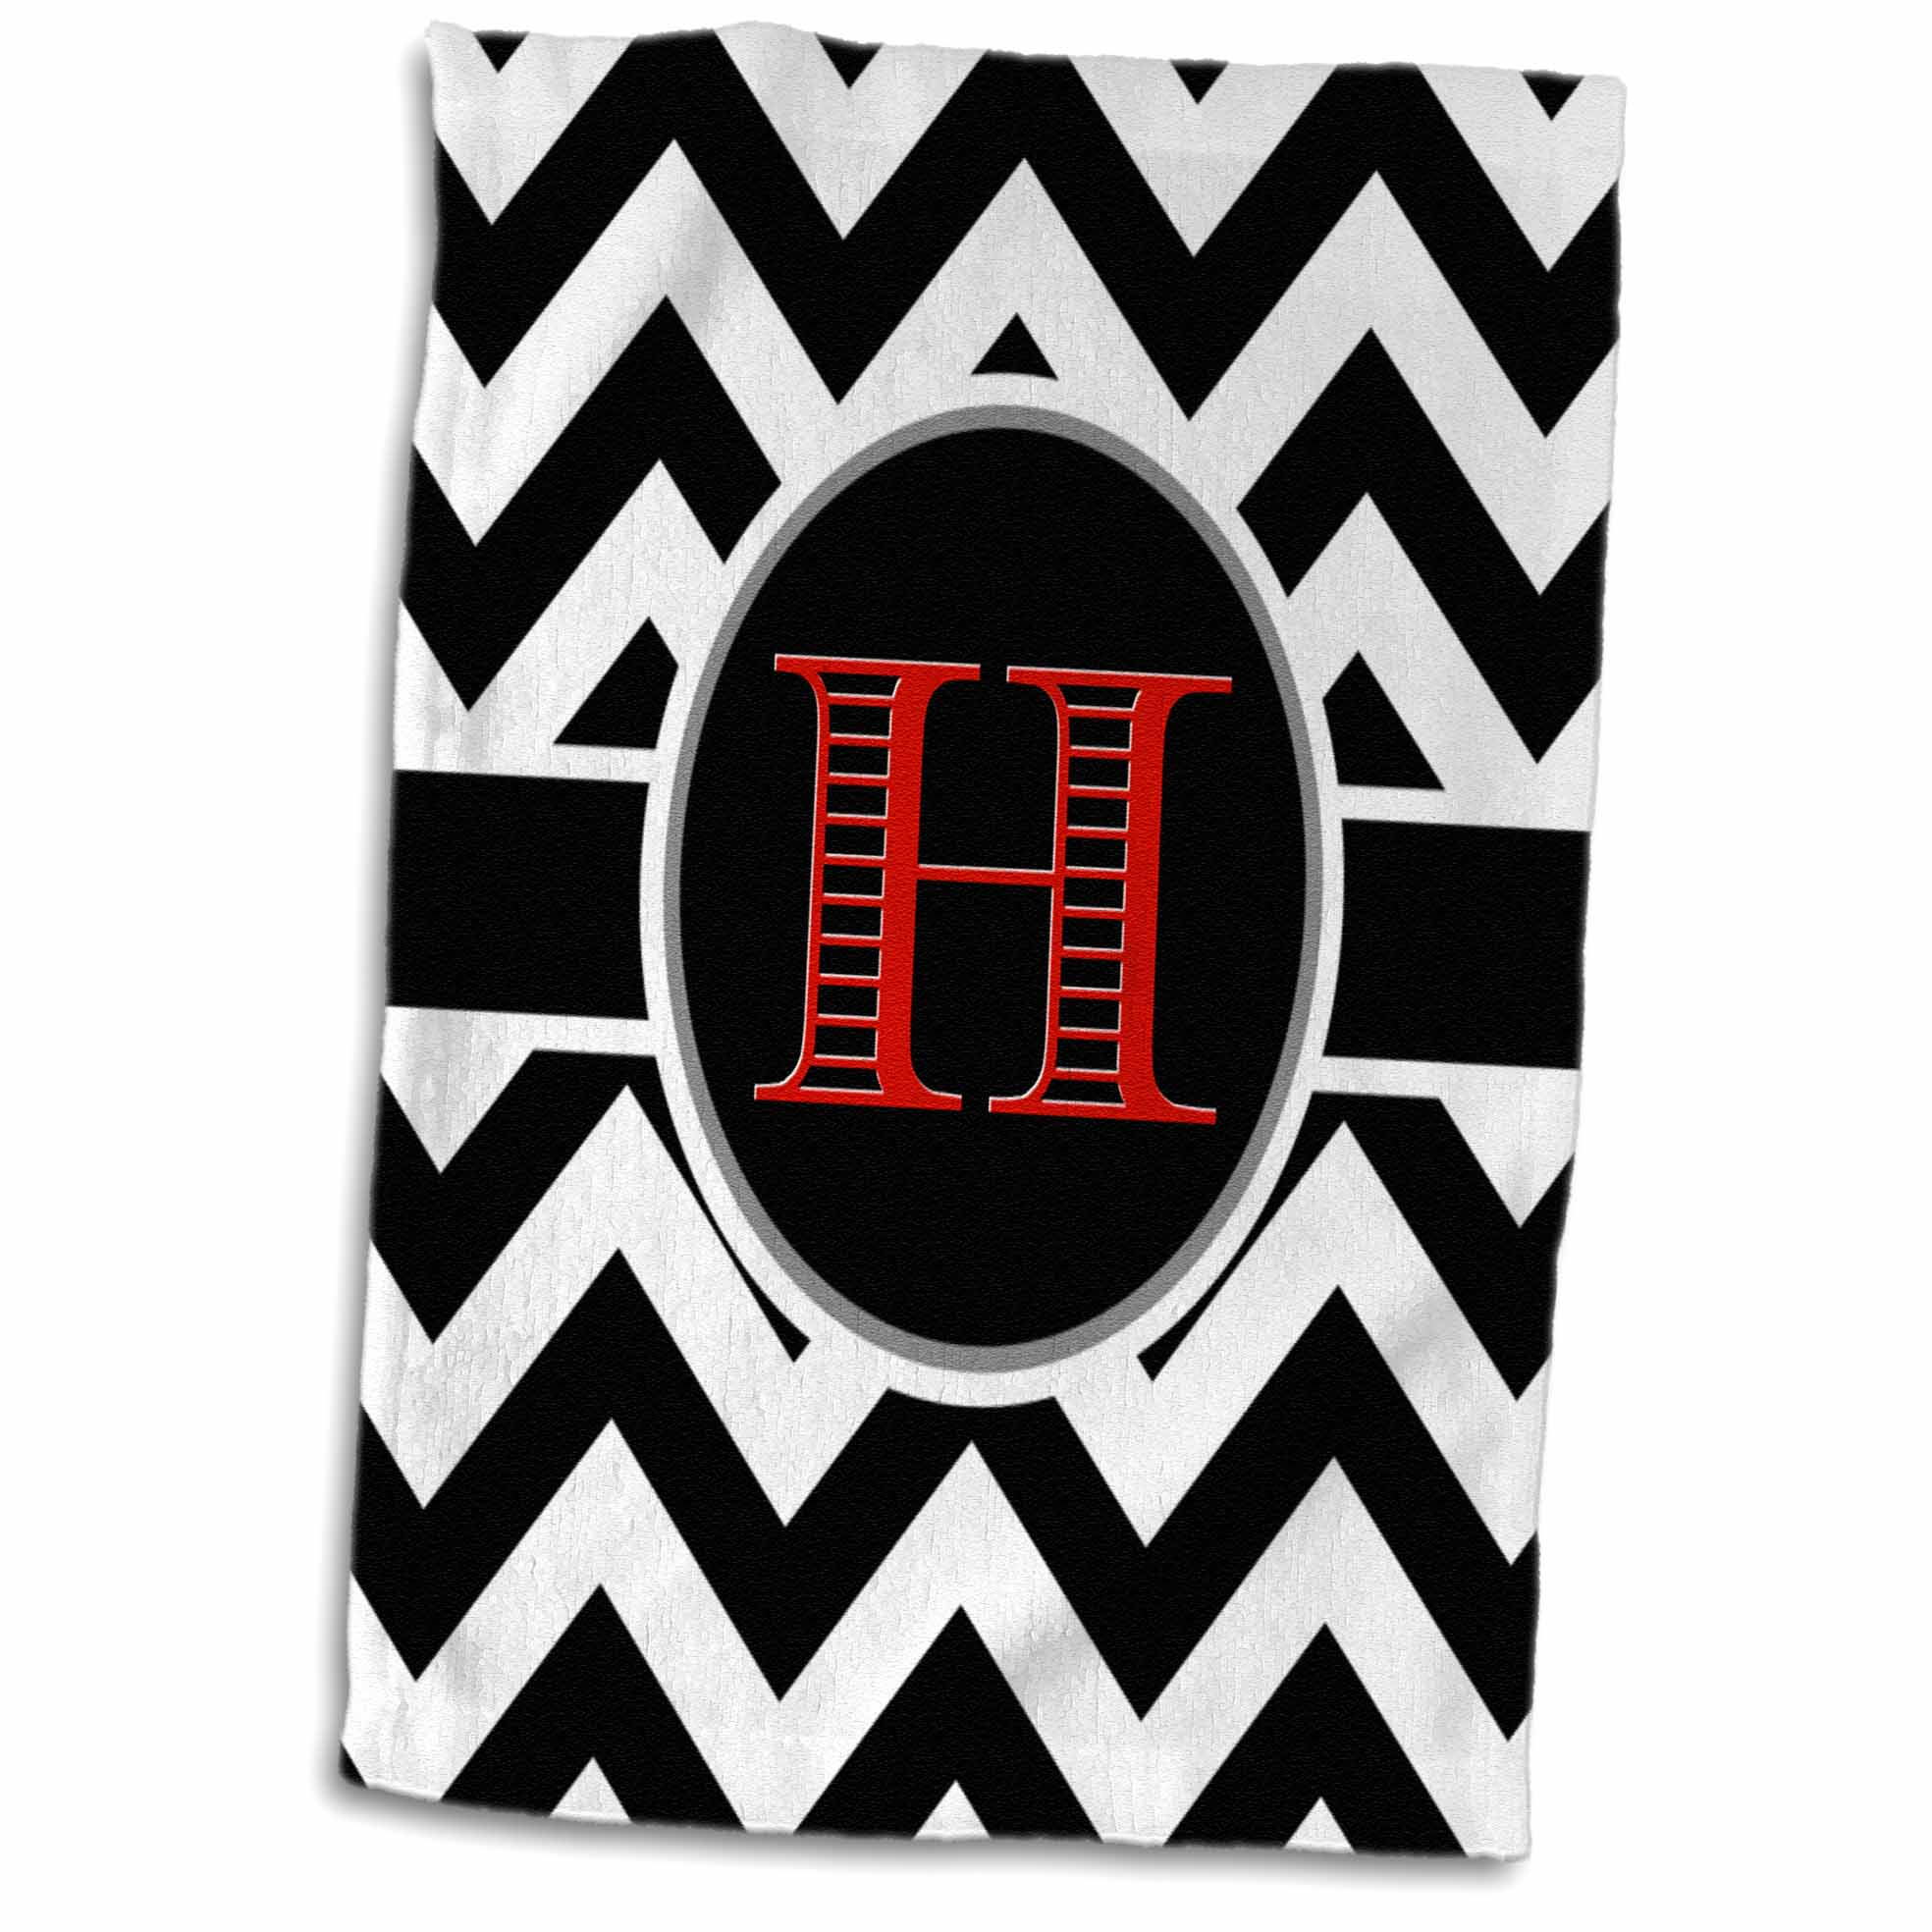 3dRose Black and white chevron monogram red initial H - Towel, 15 by 22-inch